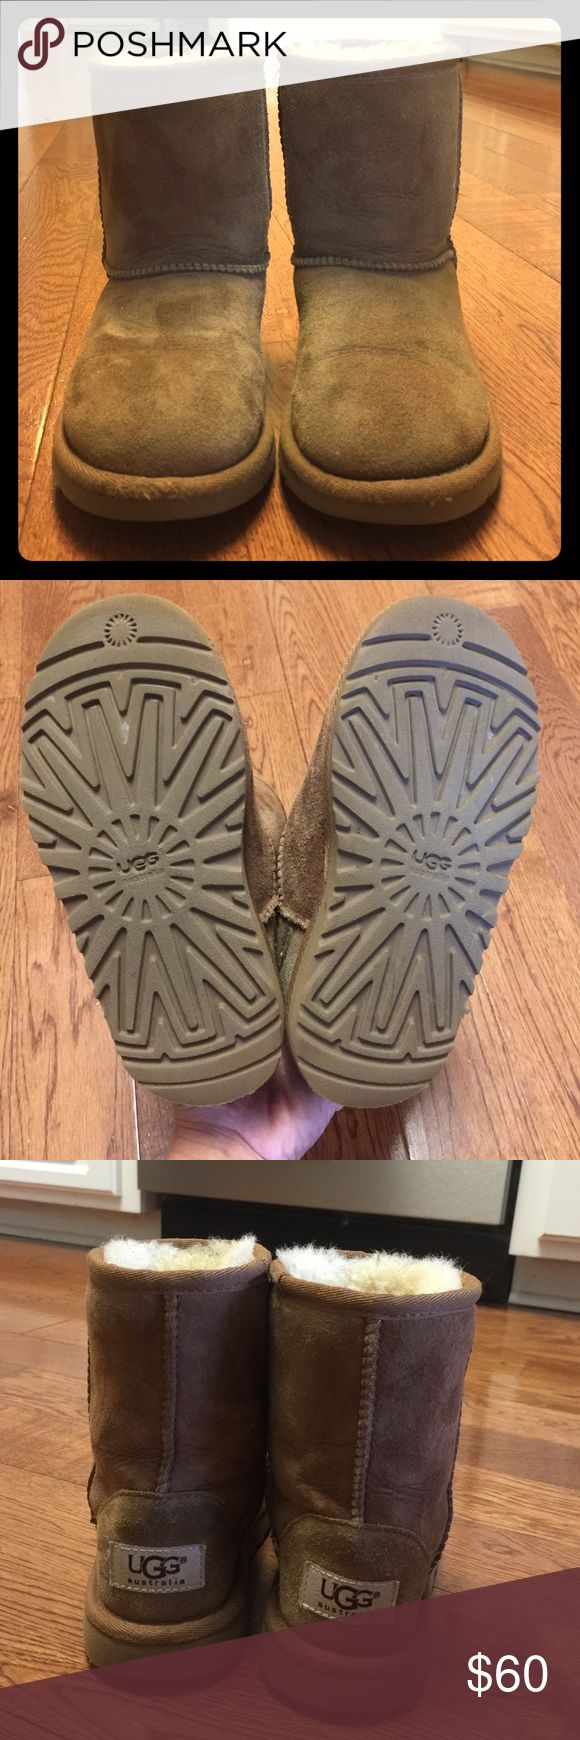 Toddler Girl Ugg Boots Toddler girl Ugg boots. In good condition. Size 12. UGG Shoes Boots